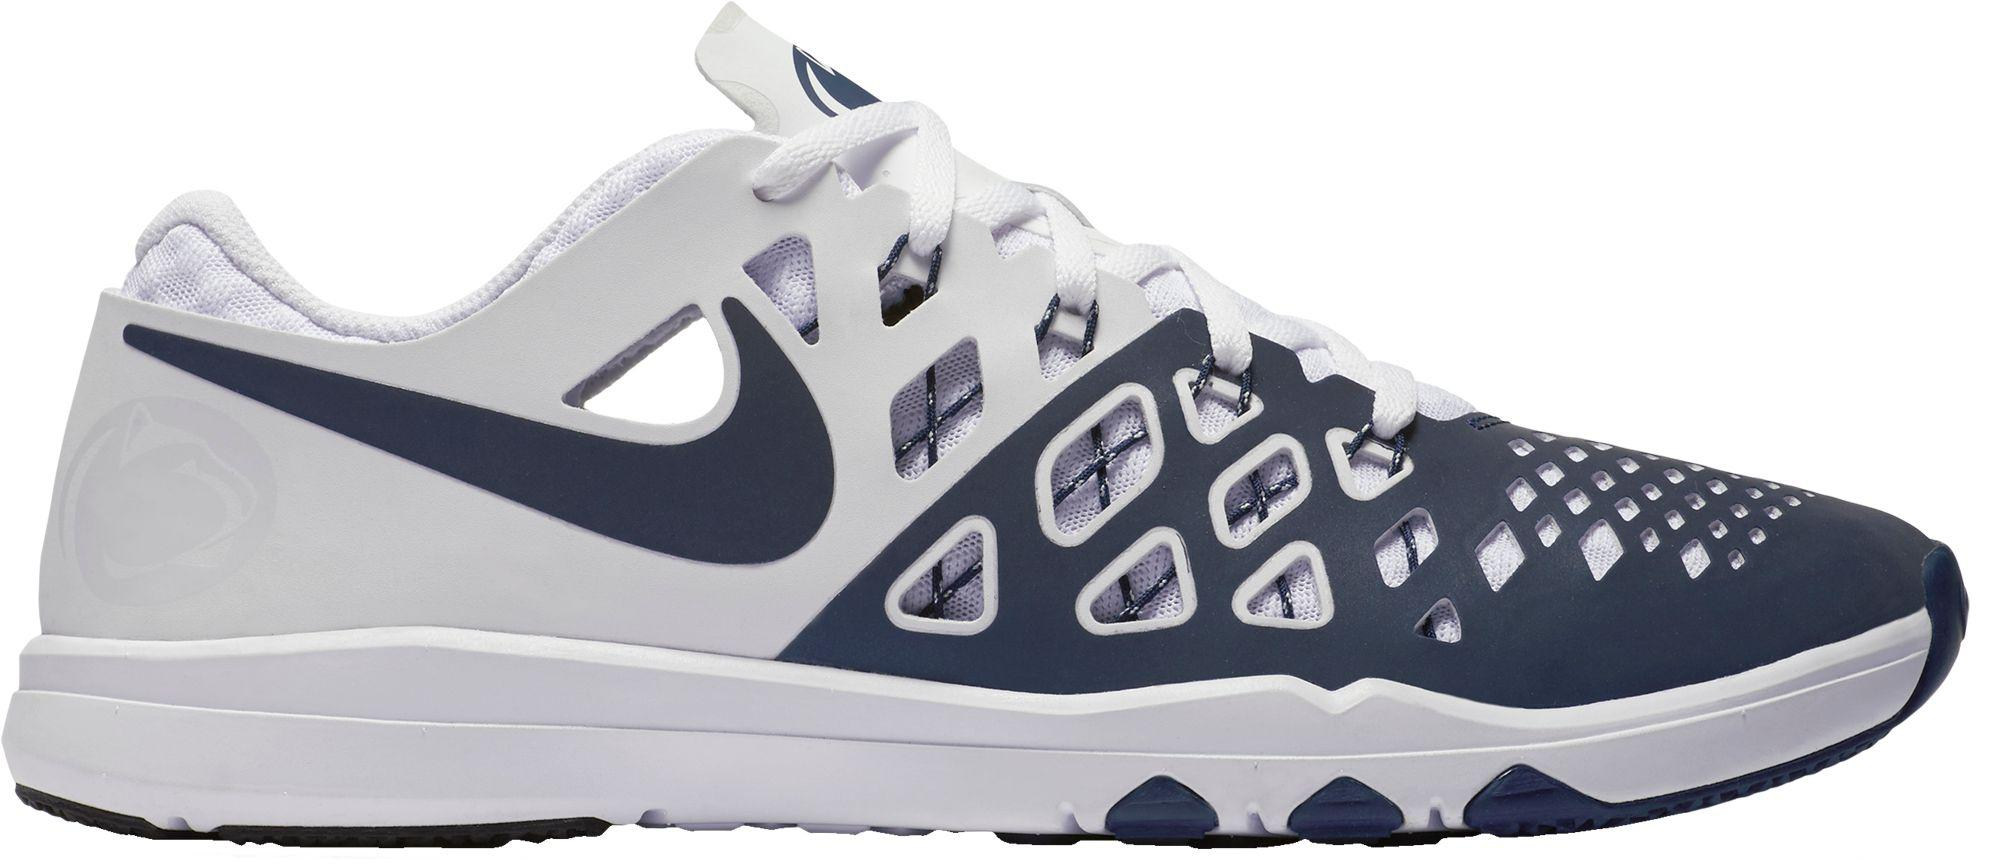 47e8f20879d5 Lyst - Nike Train Speed 4 College Team Logo Training Shoes in Blue ...